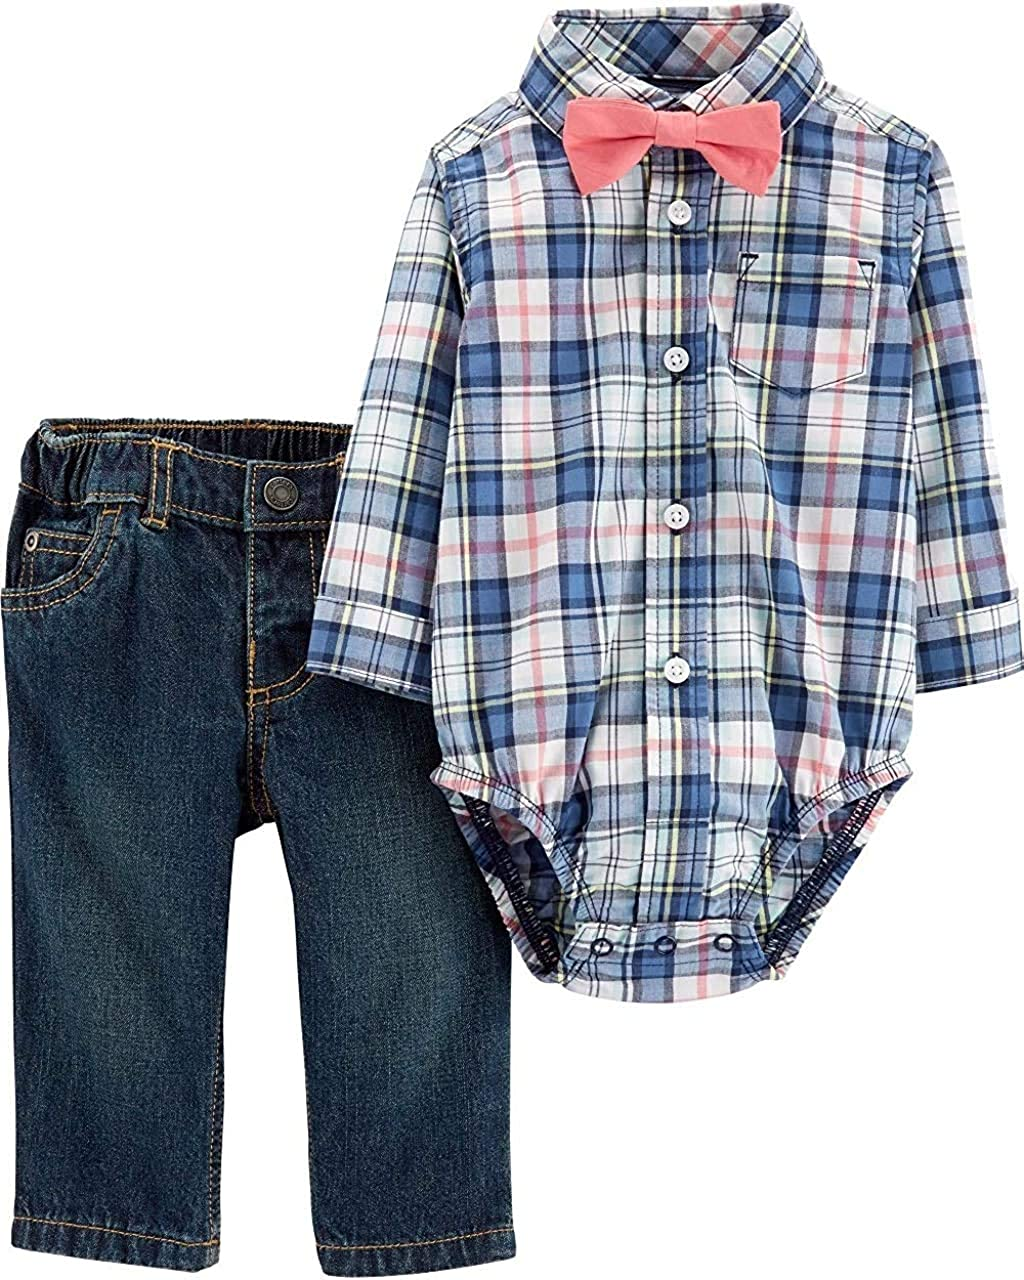 Carter's Baby Boy's Easter Outfit with Bow Tie - Blue Plaid with Jeans